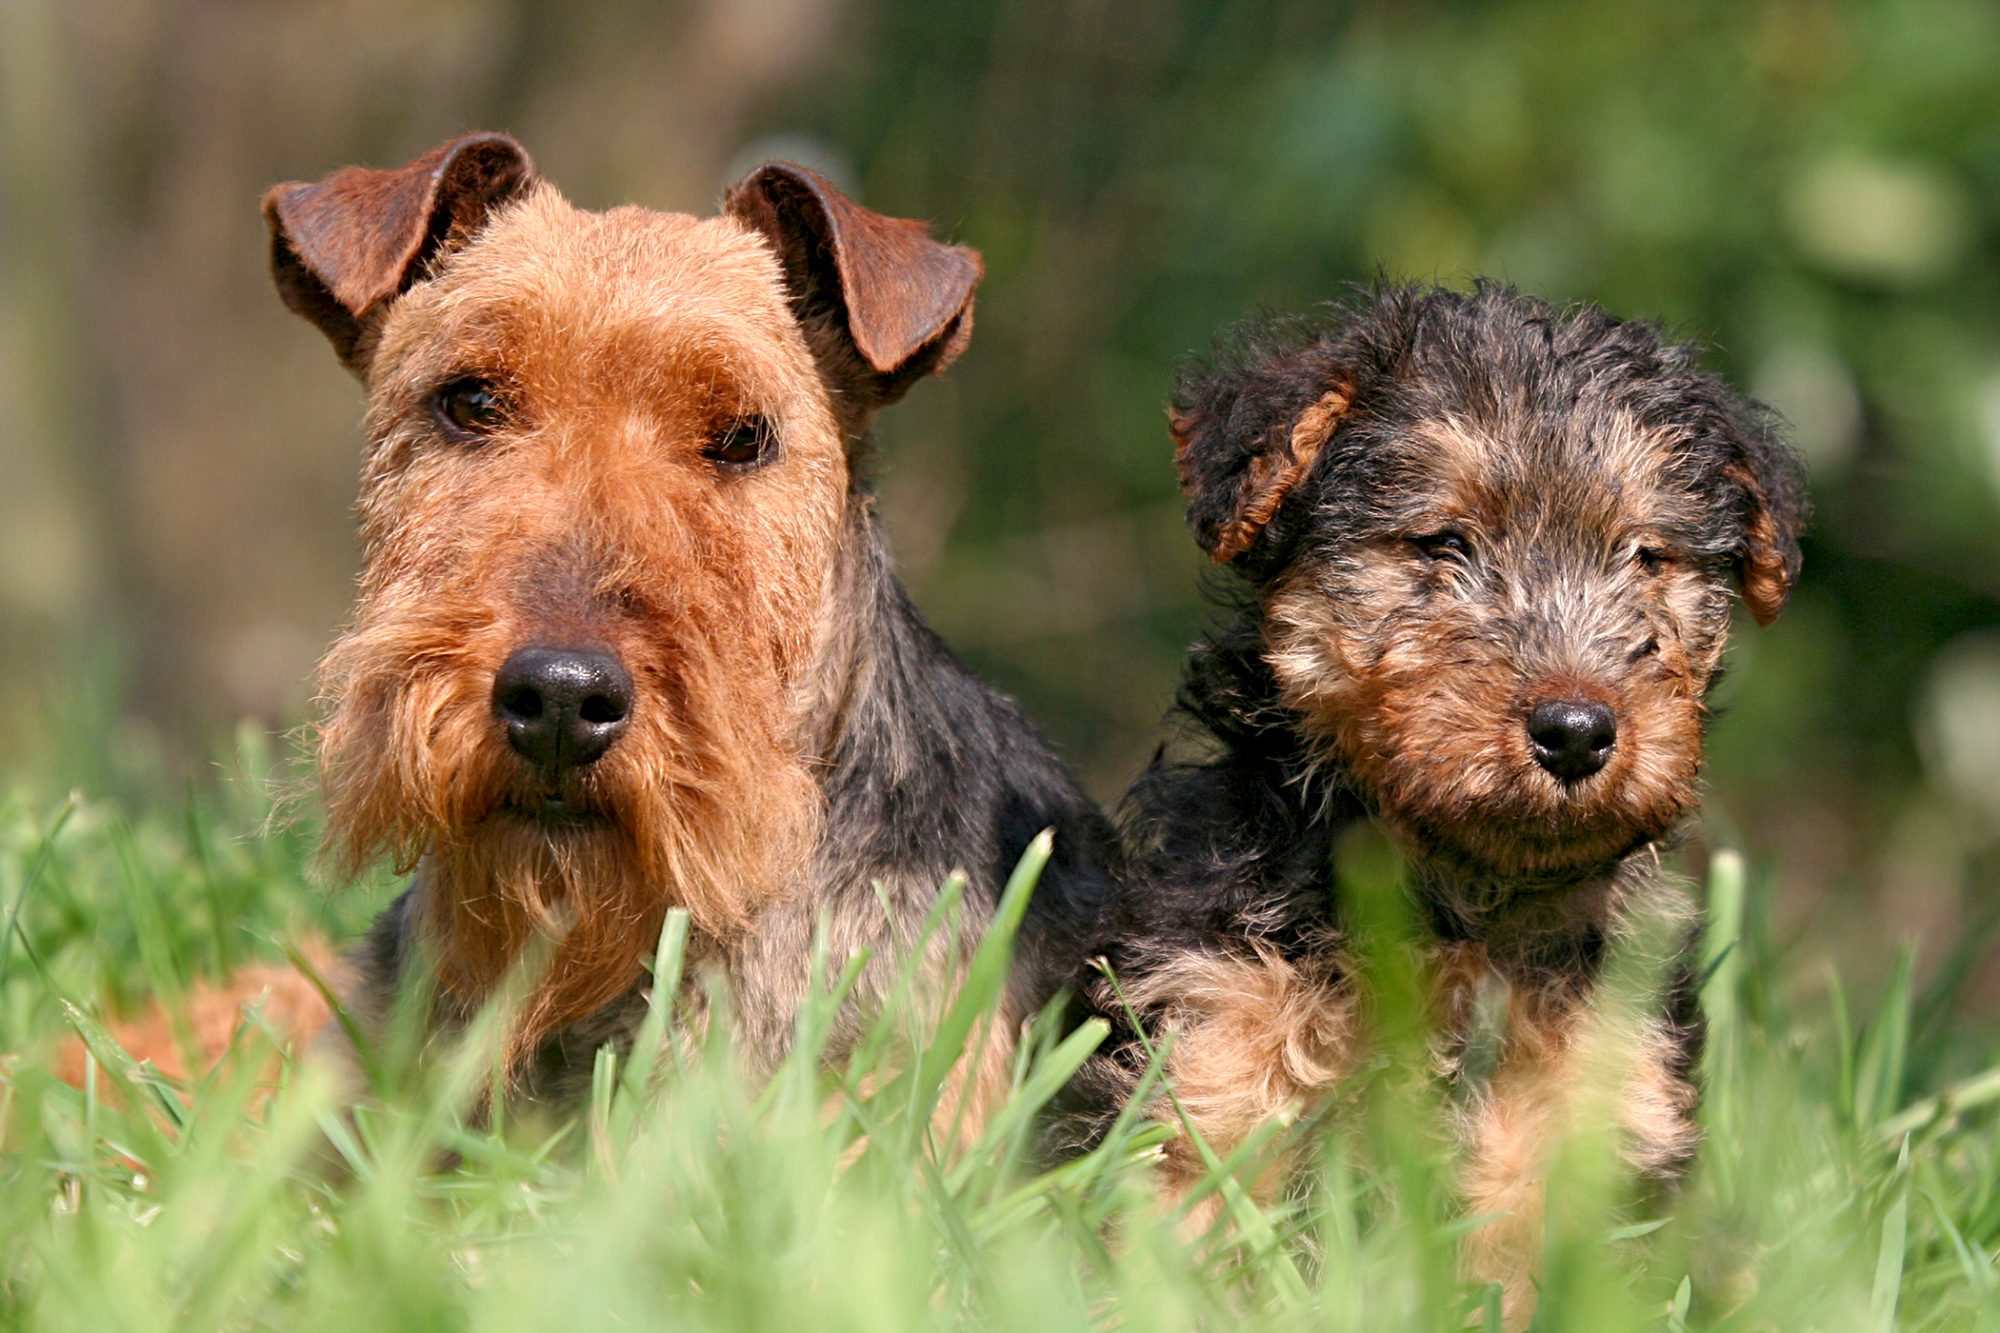 welsh terrier adult and puppy together outside